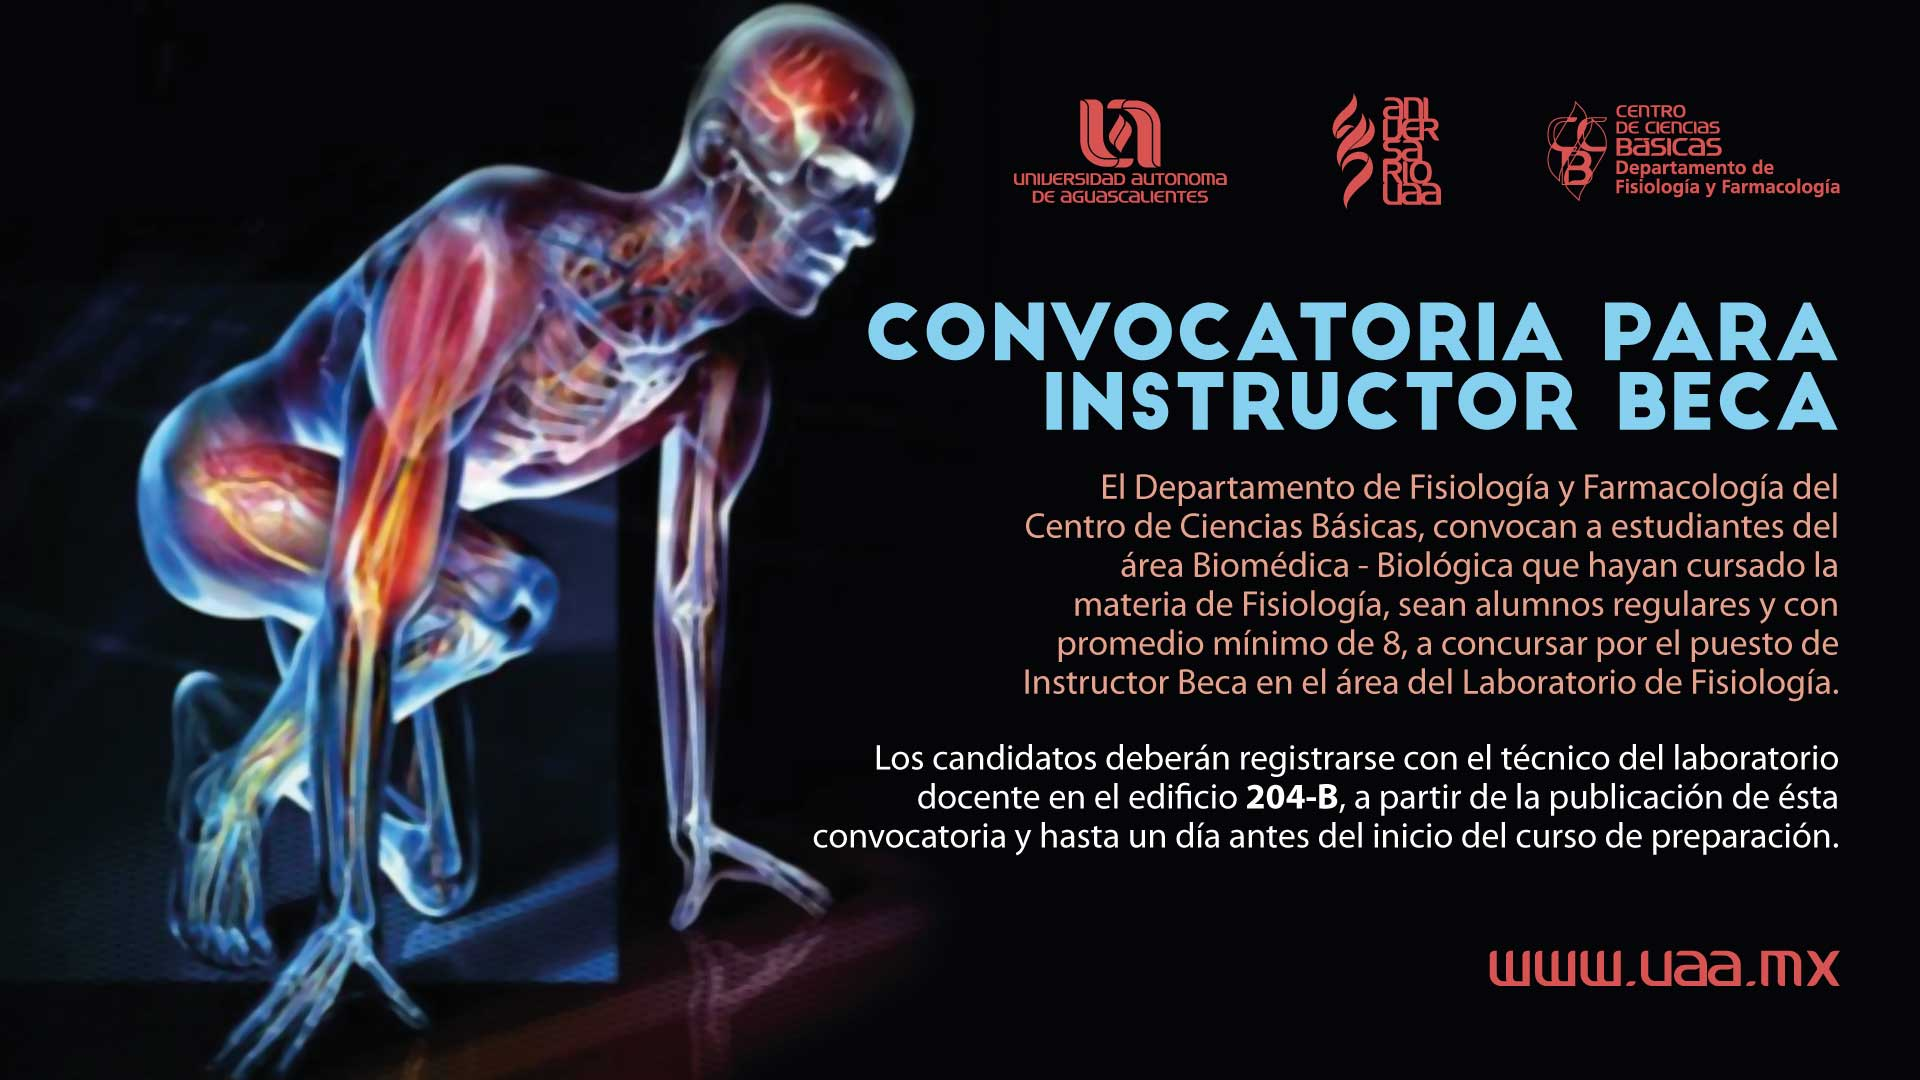 Convocatoria de Instructor Beca